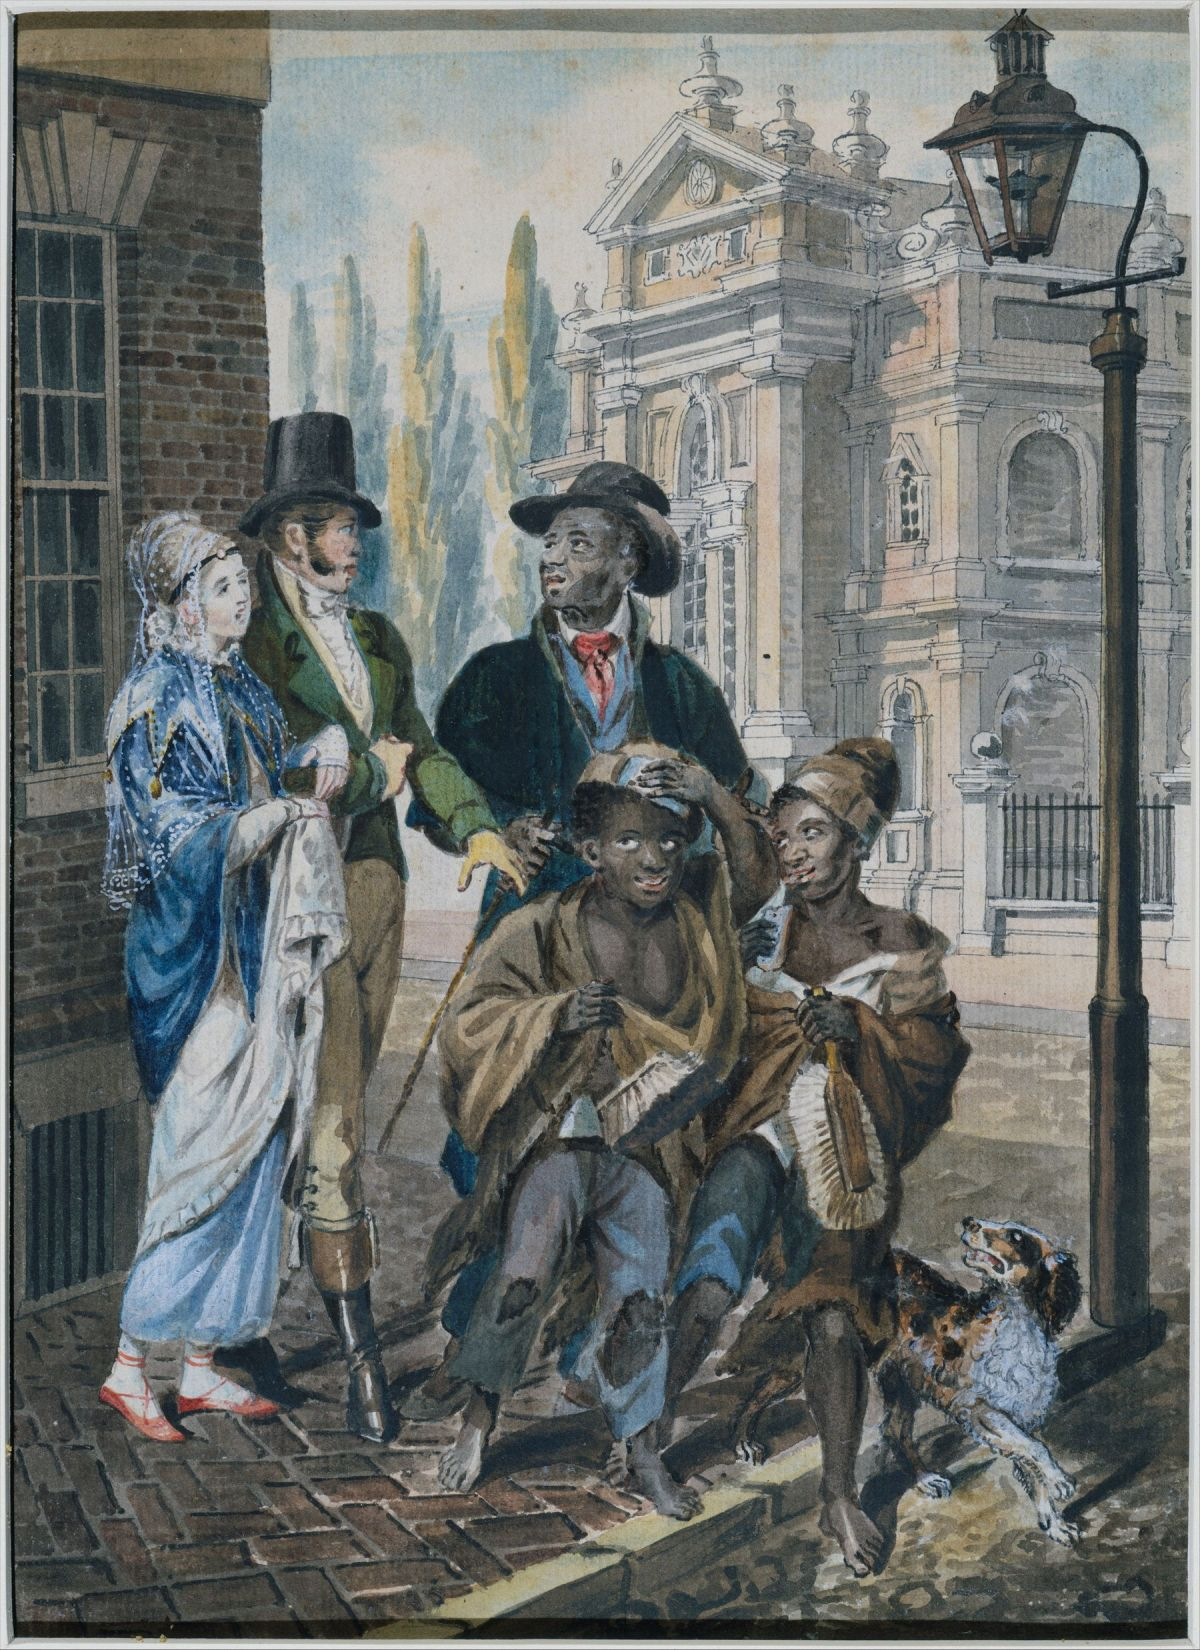 Worldly Folk Questioning Chimney Sweeps and Their Master before Christ Church, Philadelphia by John Lewis Krimmel